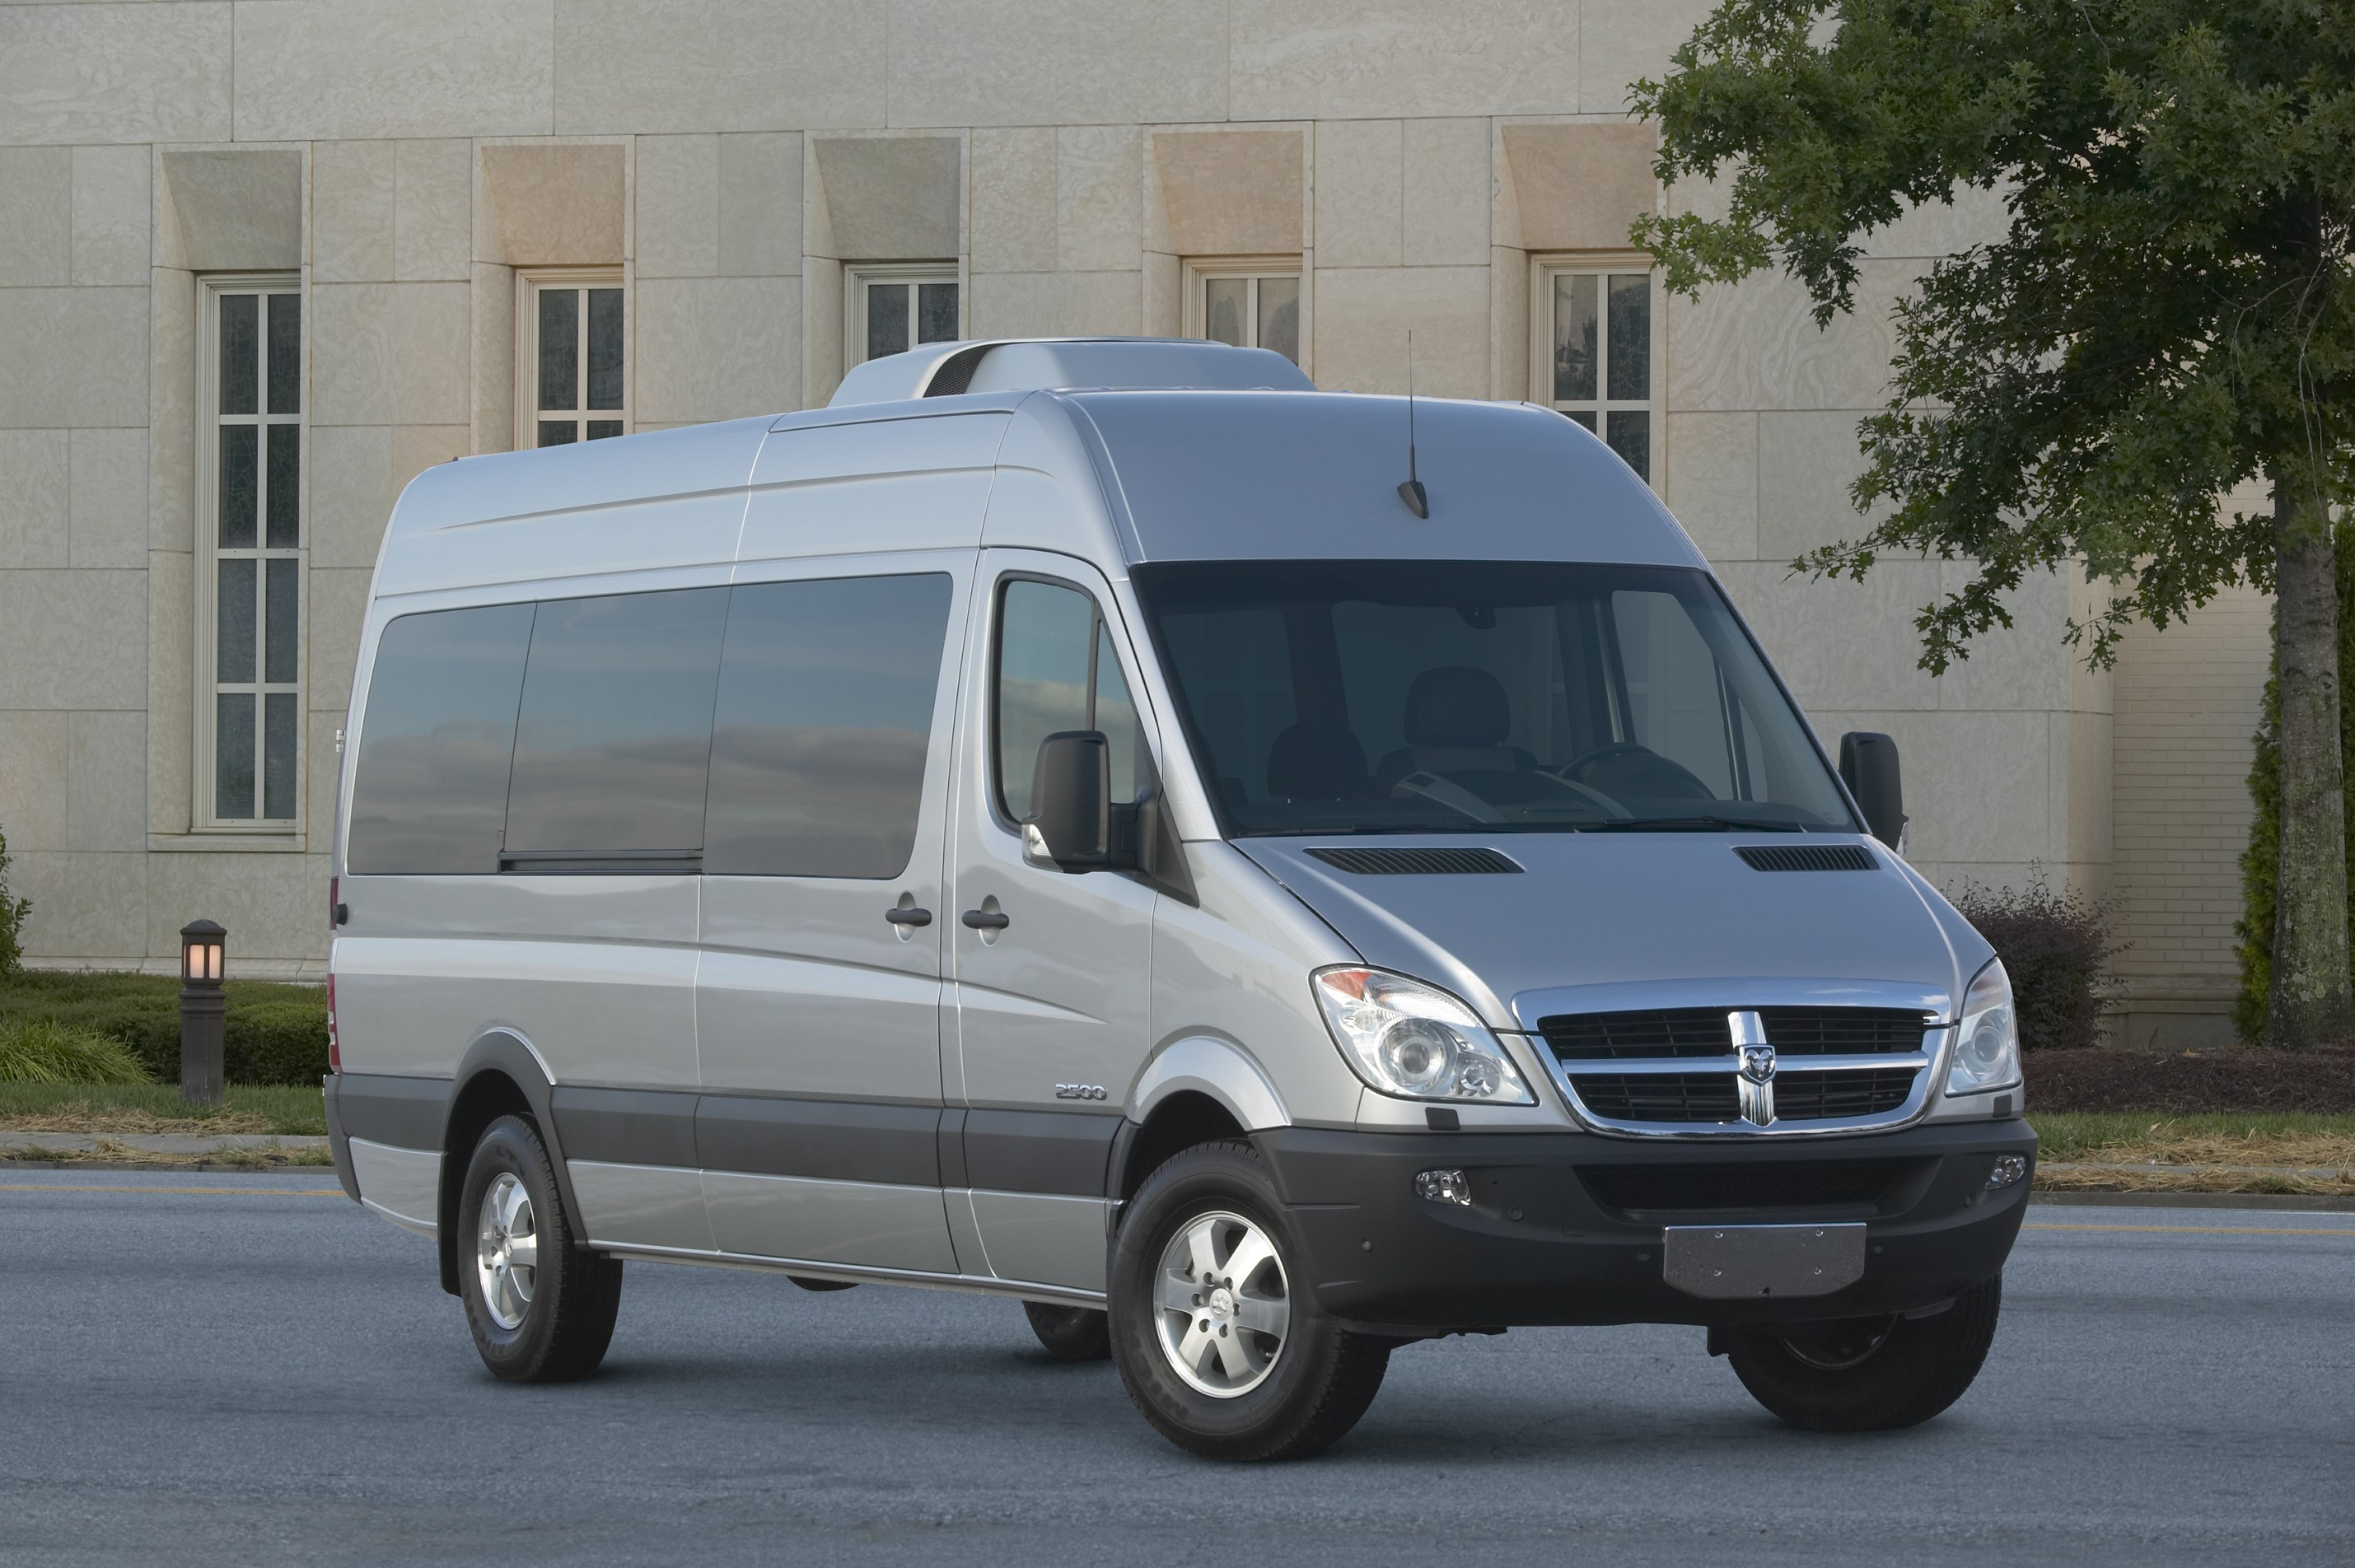 Dodge Sprinter models added to Takata airbag recall list - Autos.ca